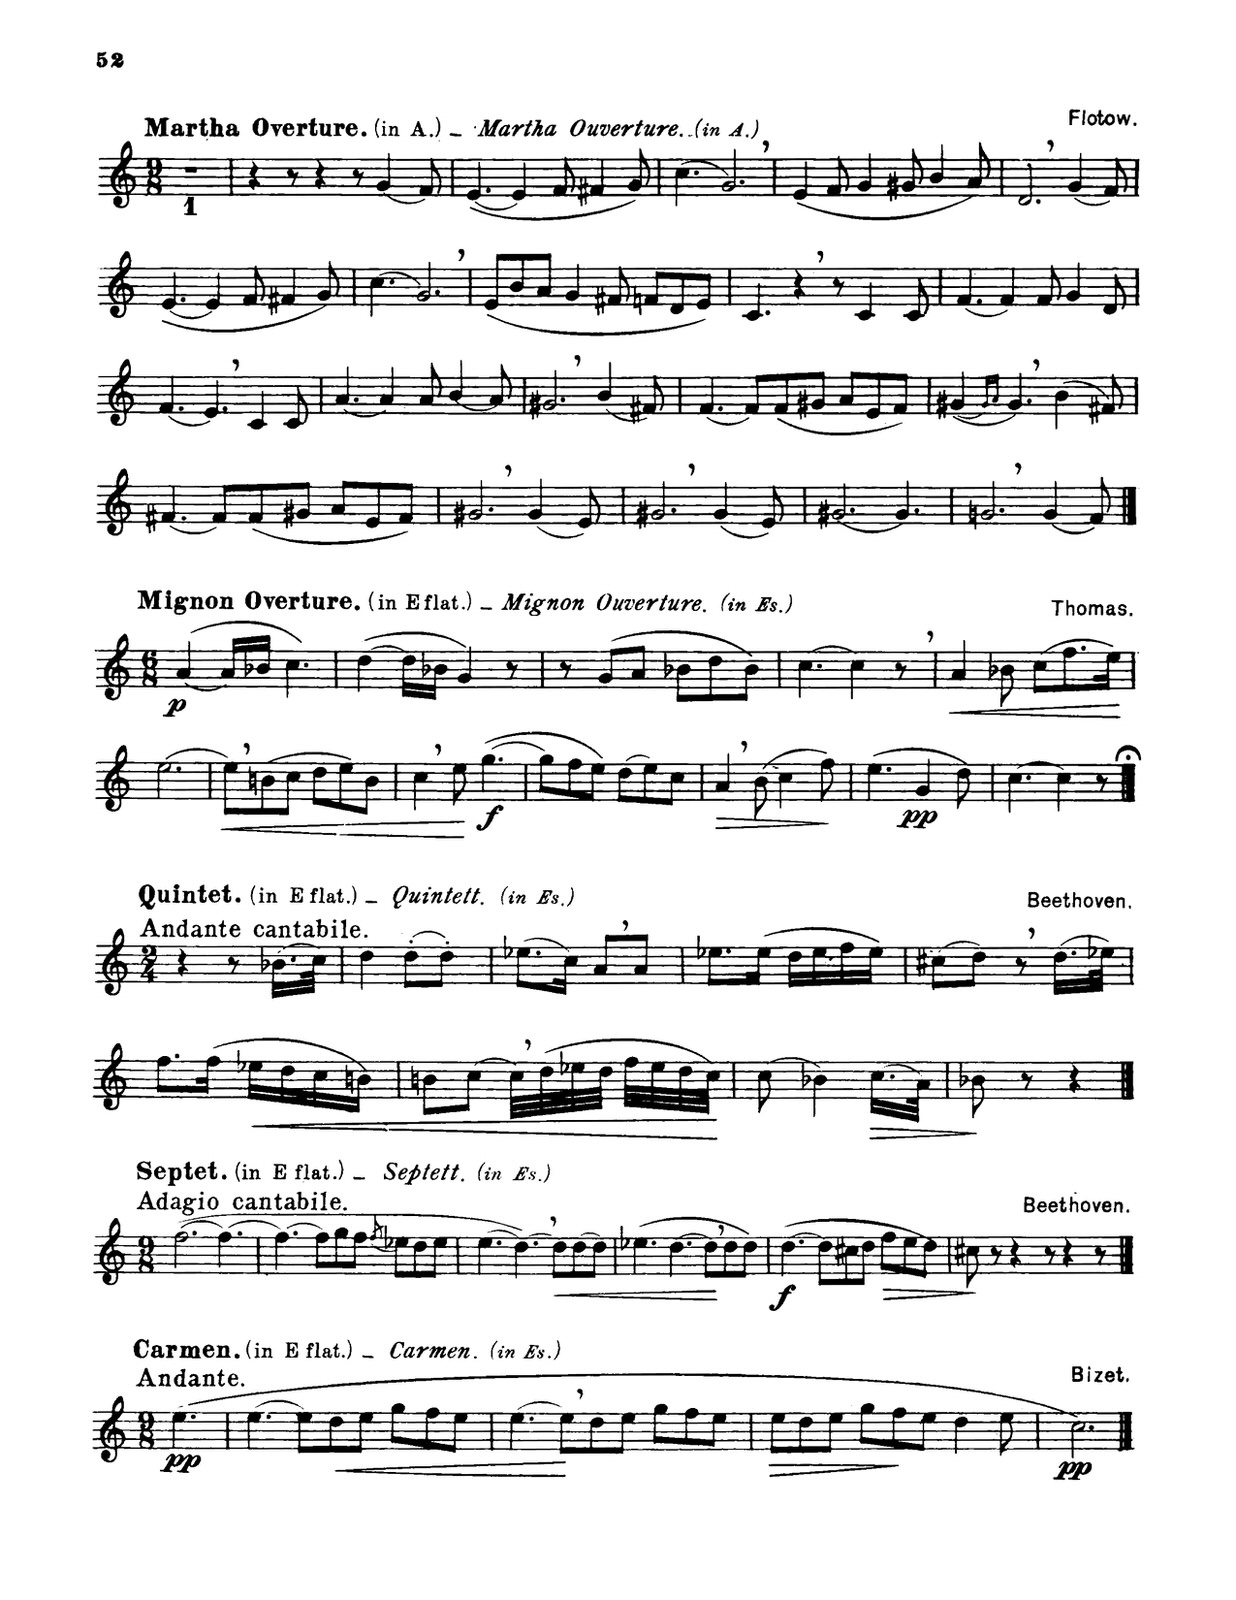 Franz, Oscar, Complete method for the French Horn-p054